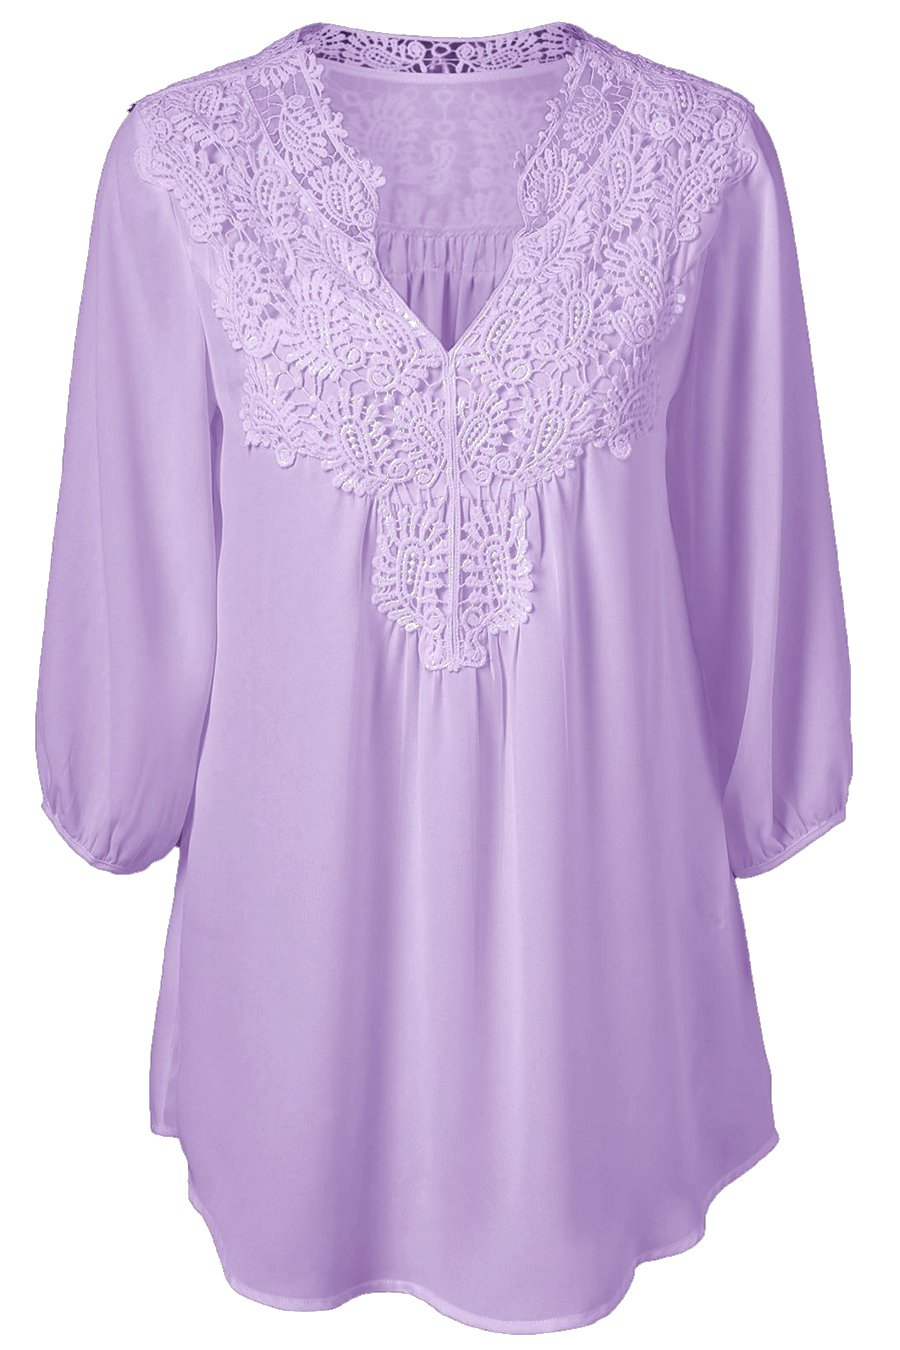 OMZIN Womens Business Career Shirts Chic Fit Tunic Tops Light Purple M